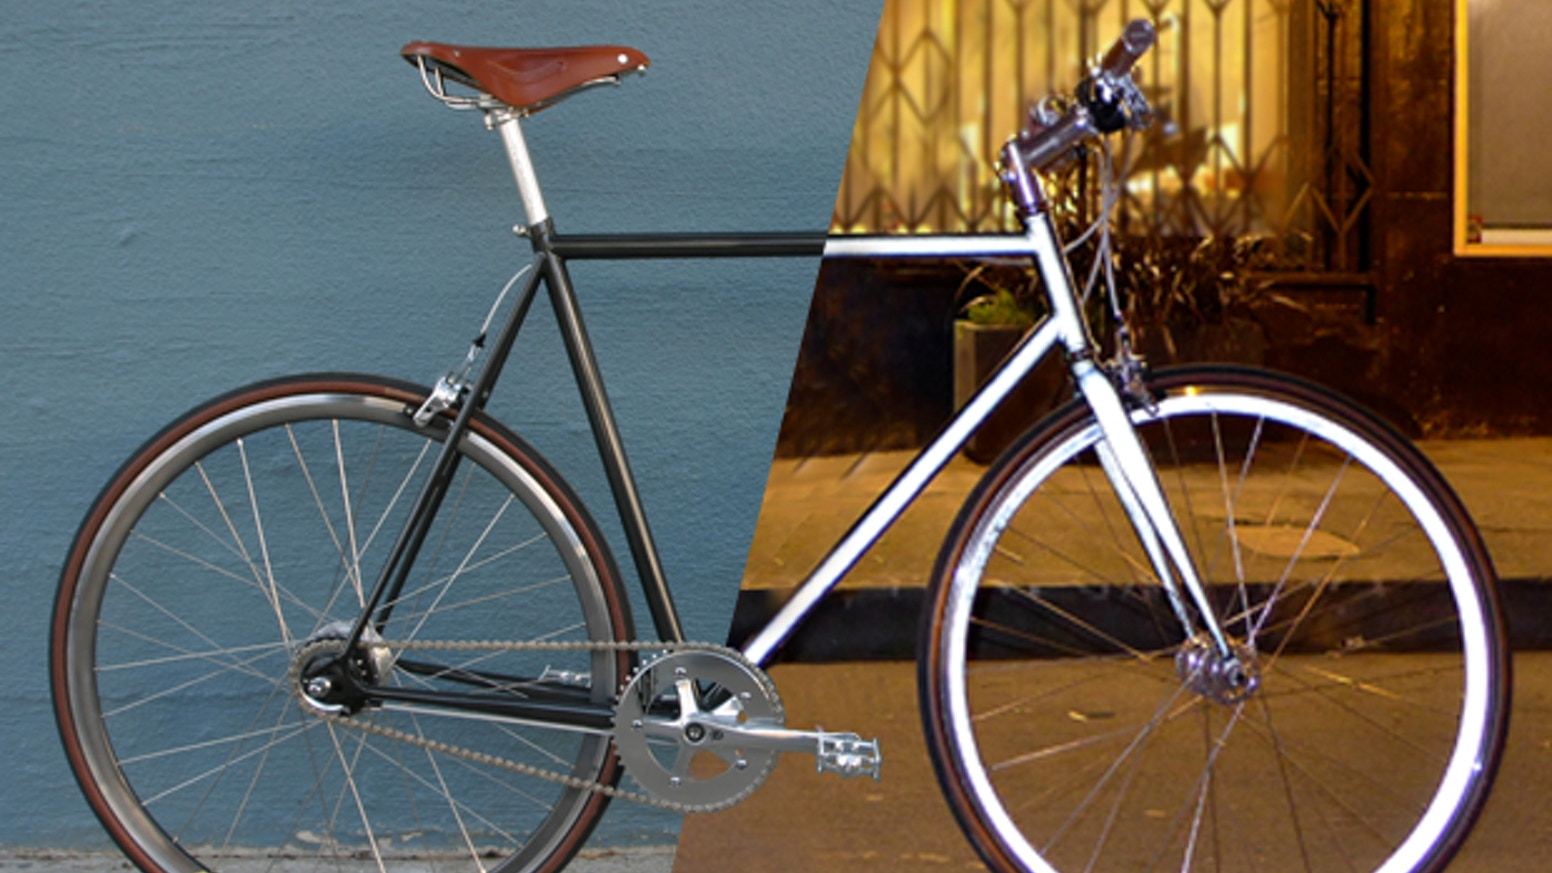 A 100% retro-reflective city bicycle inspired by late nights, city lights, and full moons. Designed and built in San Francisco.